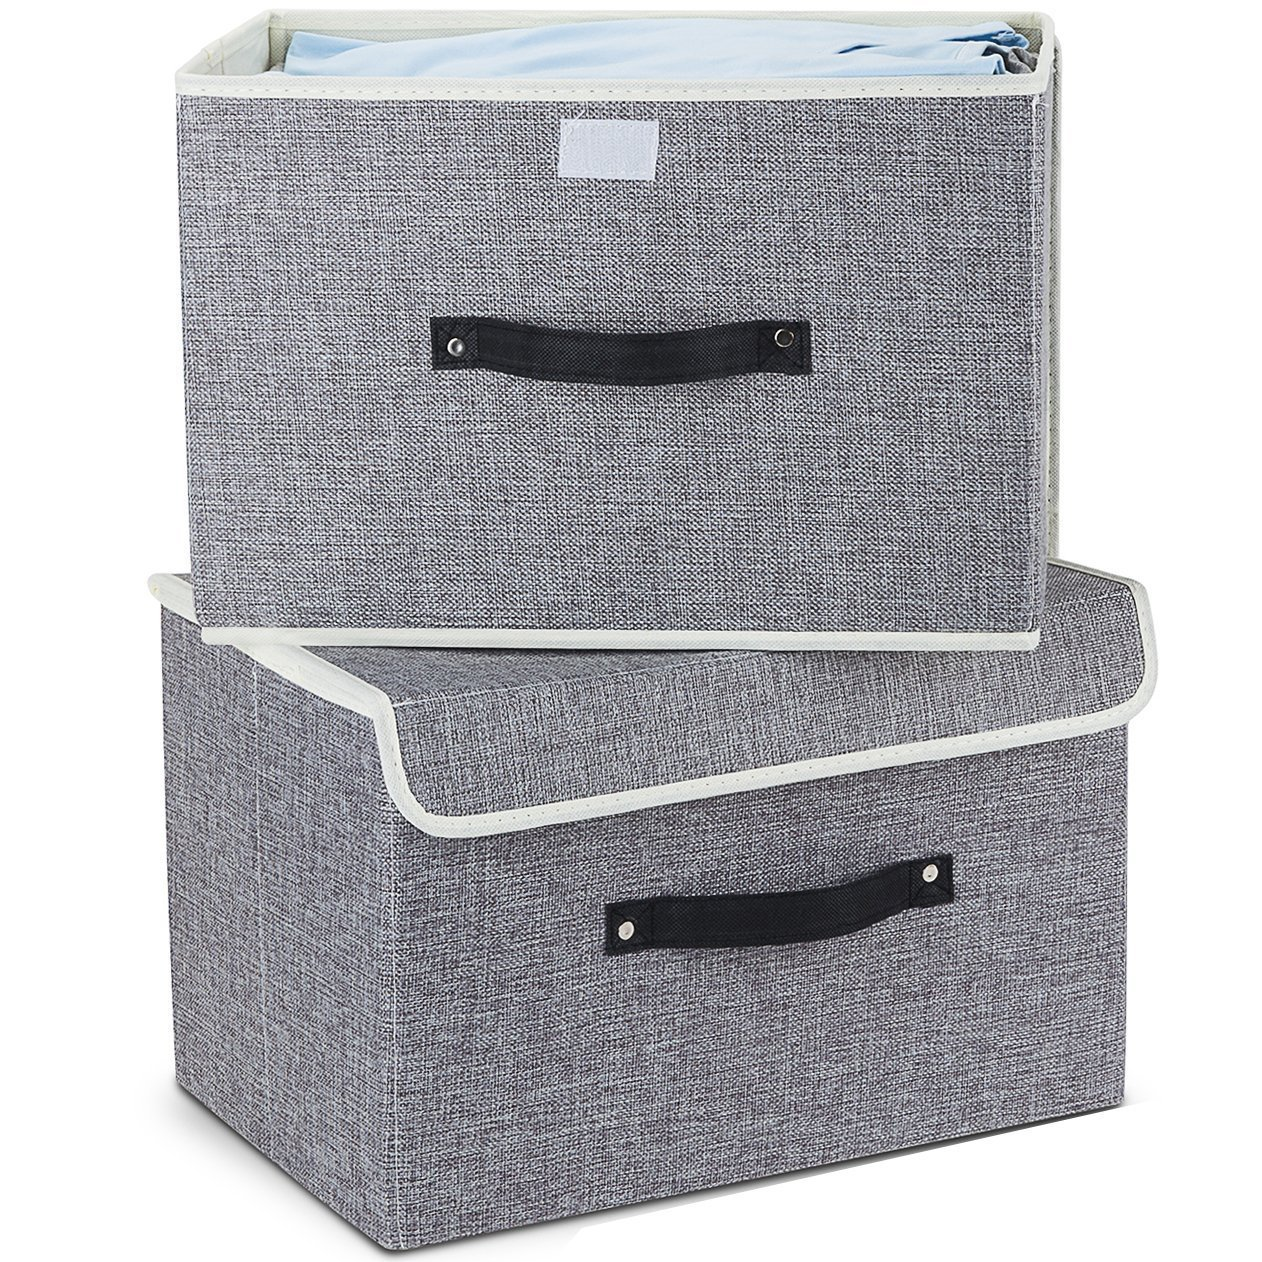 meeu0027life Storage Boxes Set of 2 Cotton Fabric Storage Bins Baskets with Lids  sc 1 st  Amazon UK & Clothes Storage Drawers: Amazon.co.uk